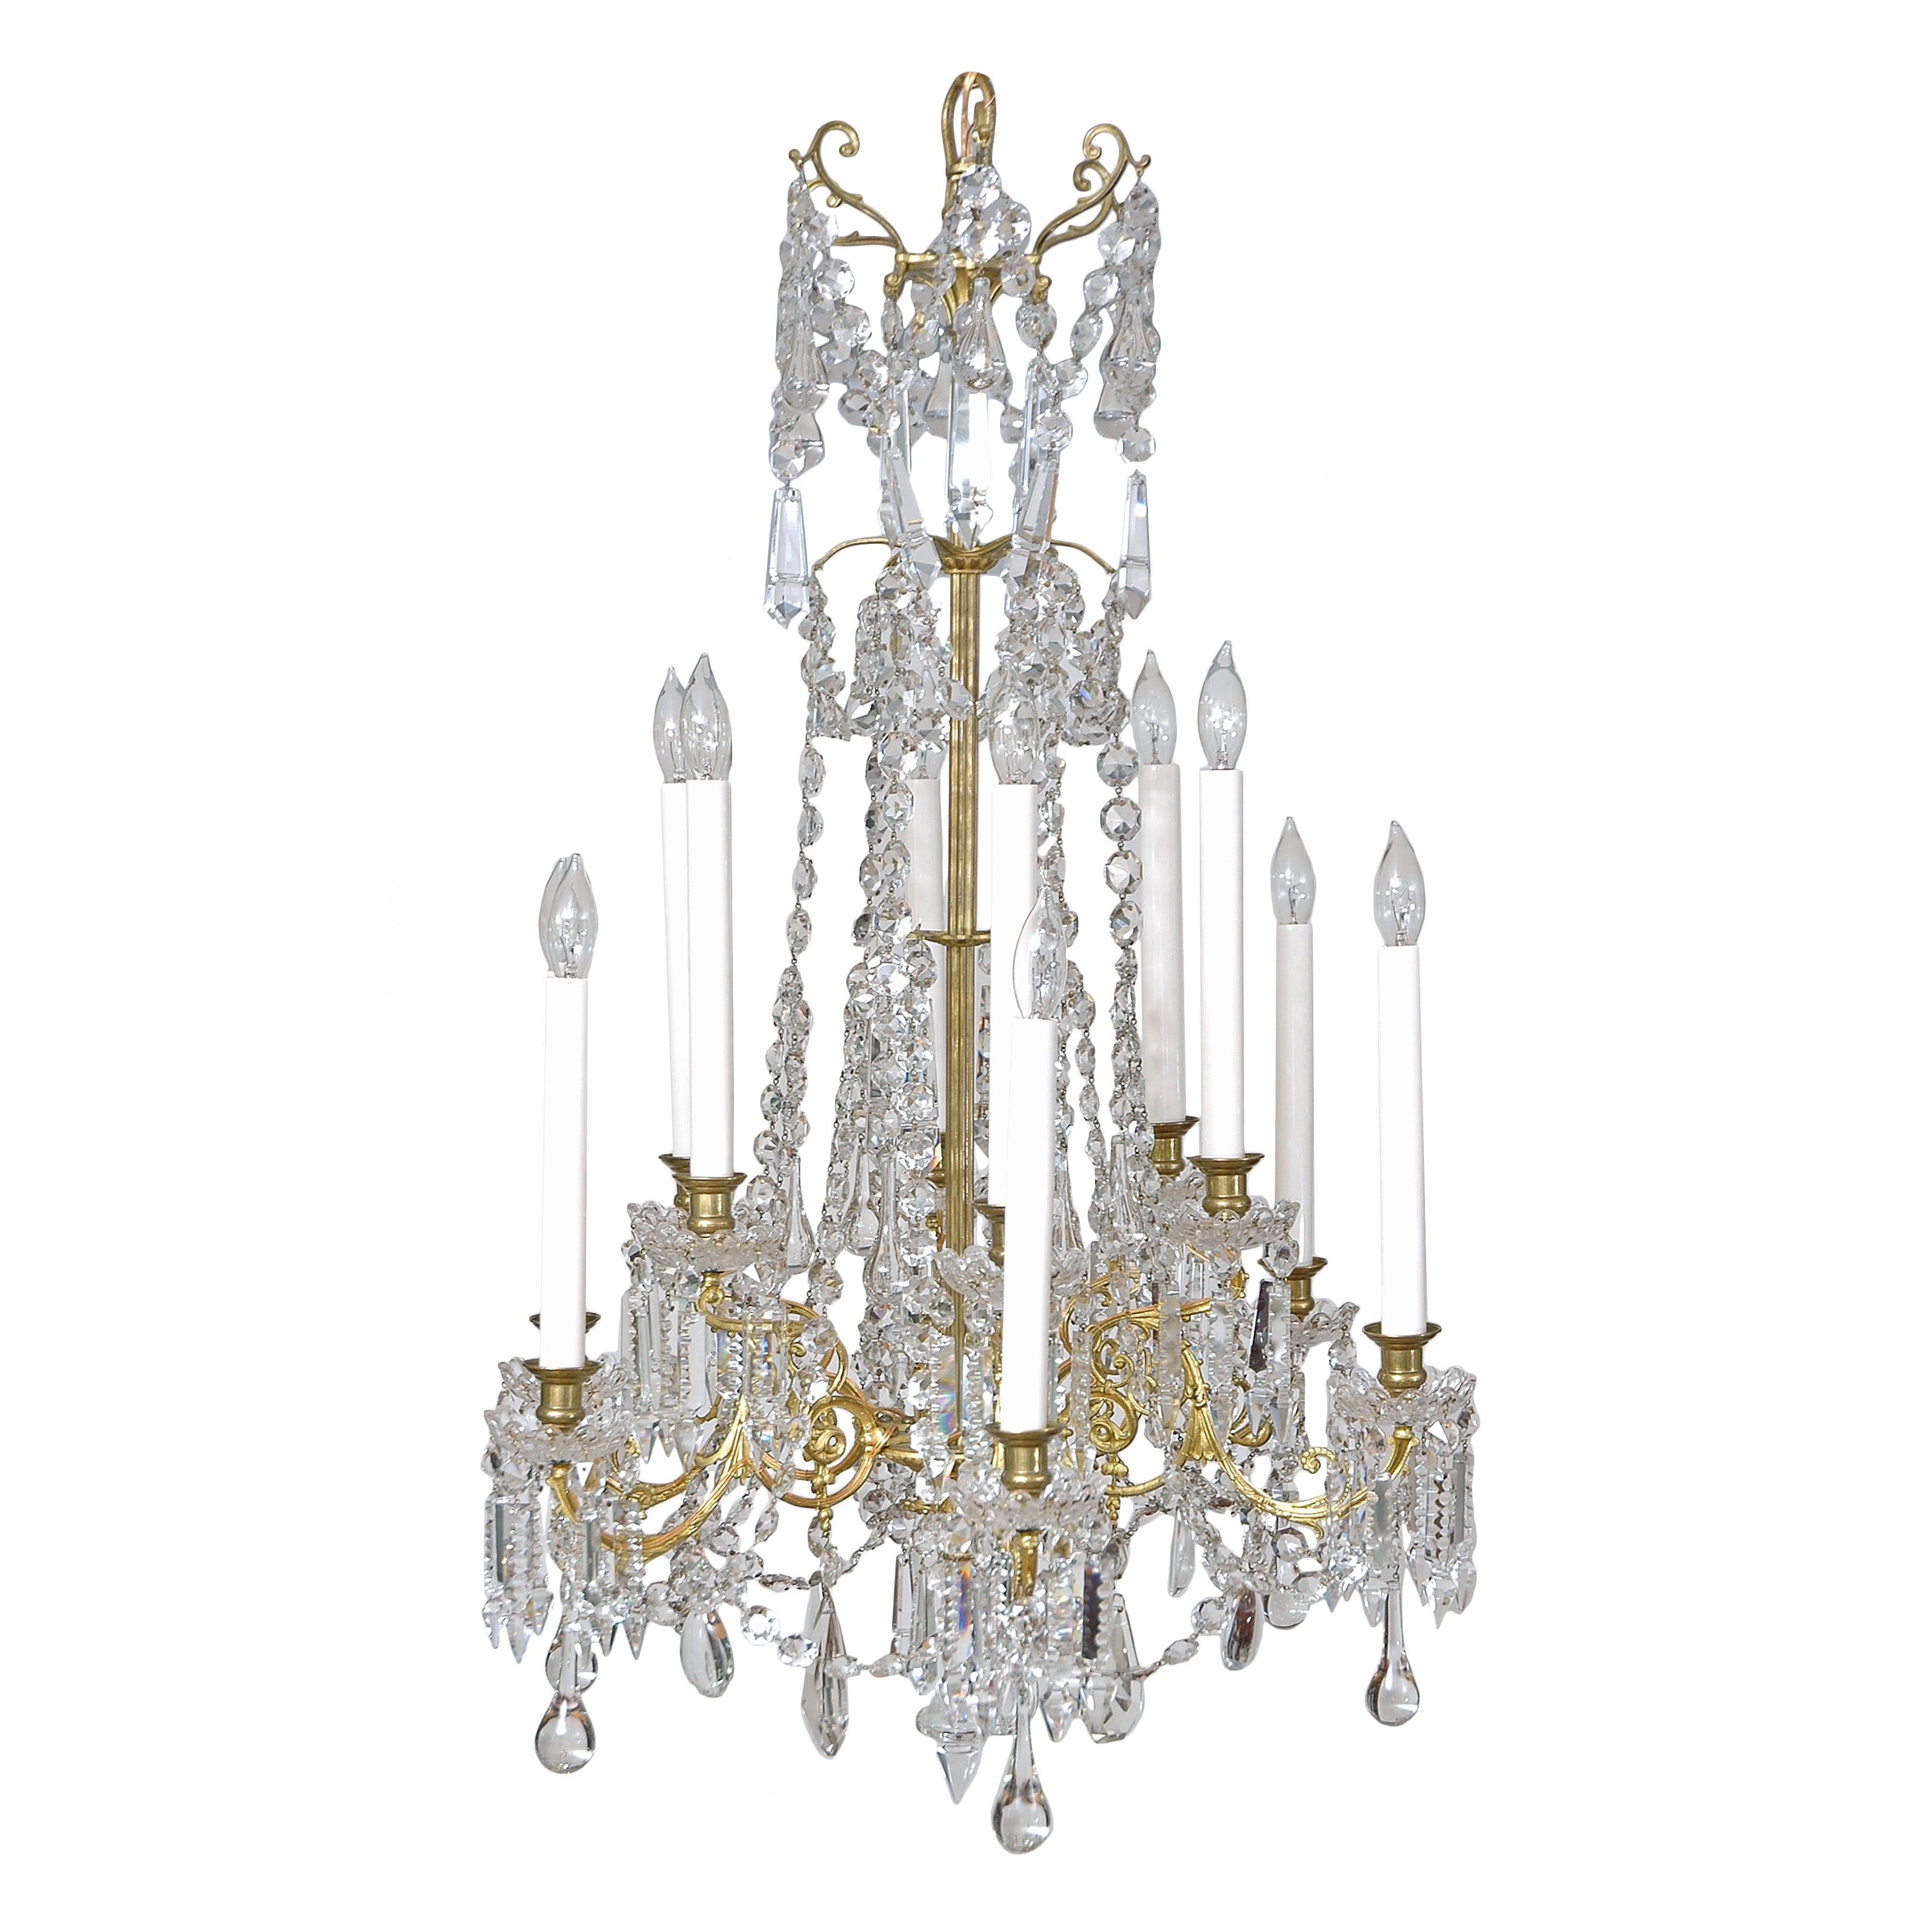 Scandinavian Cut-Glass and Crystal Chandelier with Twelve Lights, circa 1880